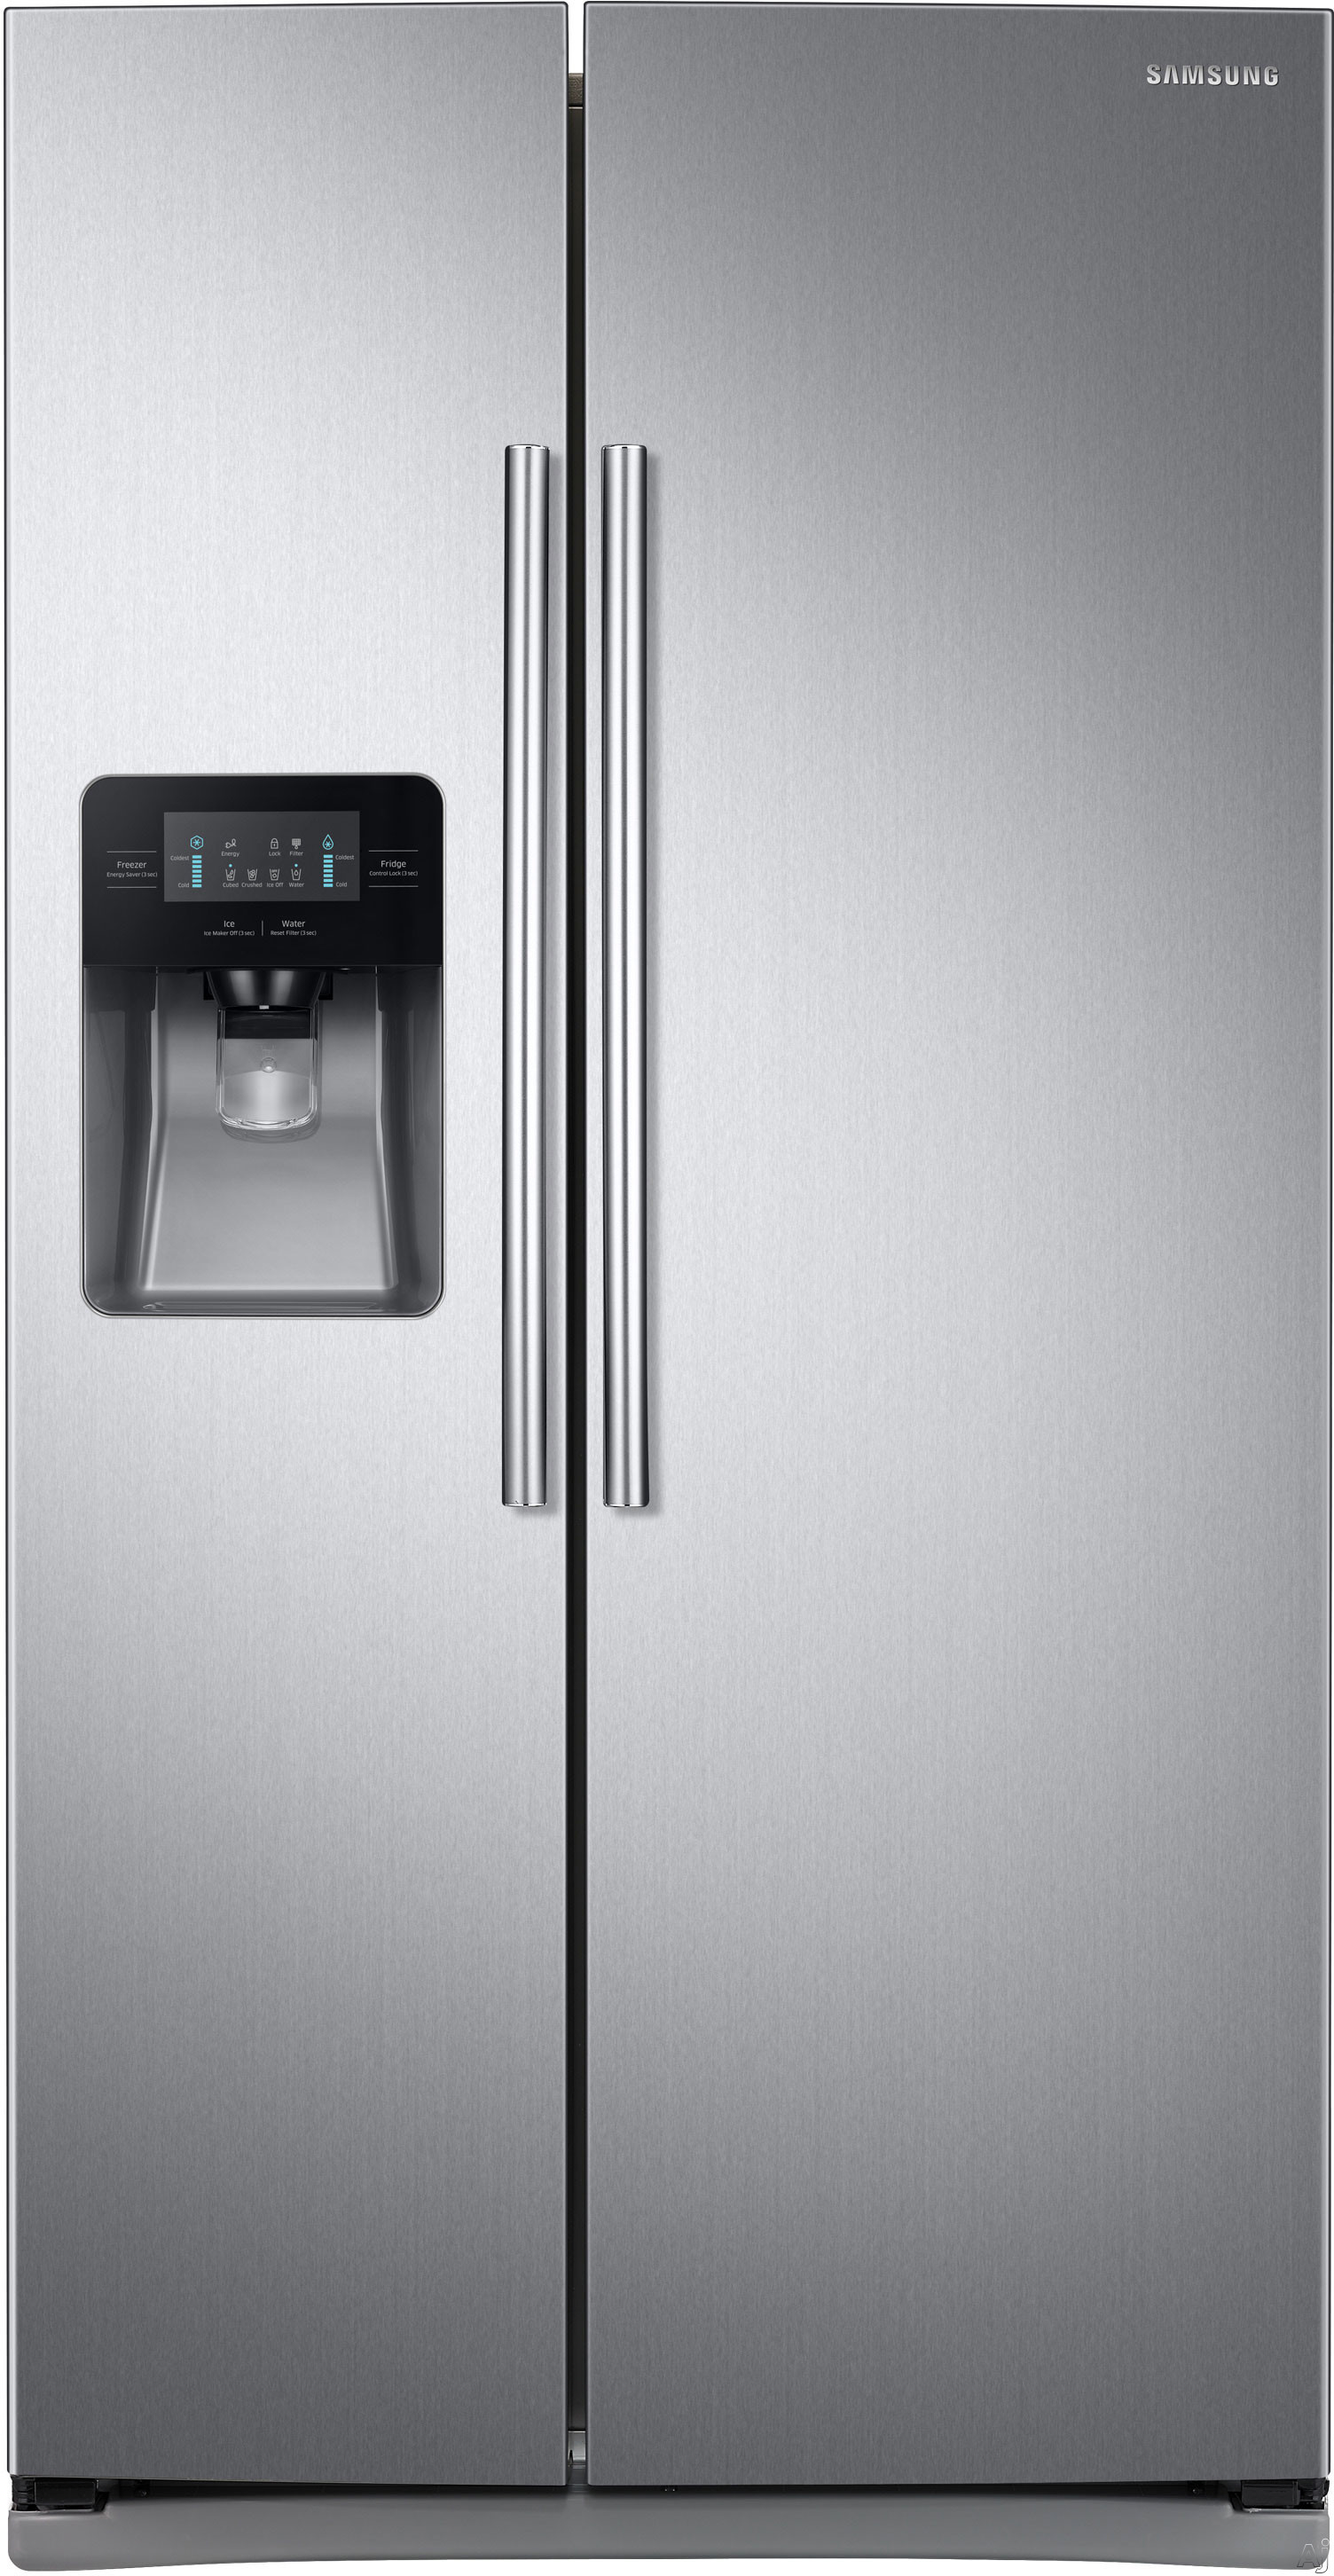 Samsung RS25J500D 36 Inch Side-by-Side Refrigerator with Filtered Ice and Water Dispenser, Power Cool/Power Freeze, Adjustable Spill Proof Shelves, 2 Humidity Controlled Drawers, Gallon Door Bins, LED Display, 25 cu. ft. Capacity and ENERGY STAR